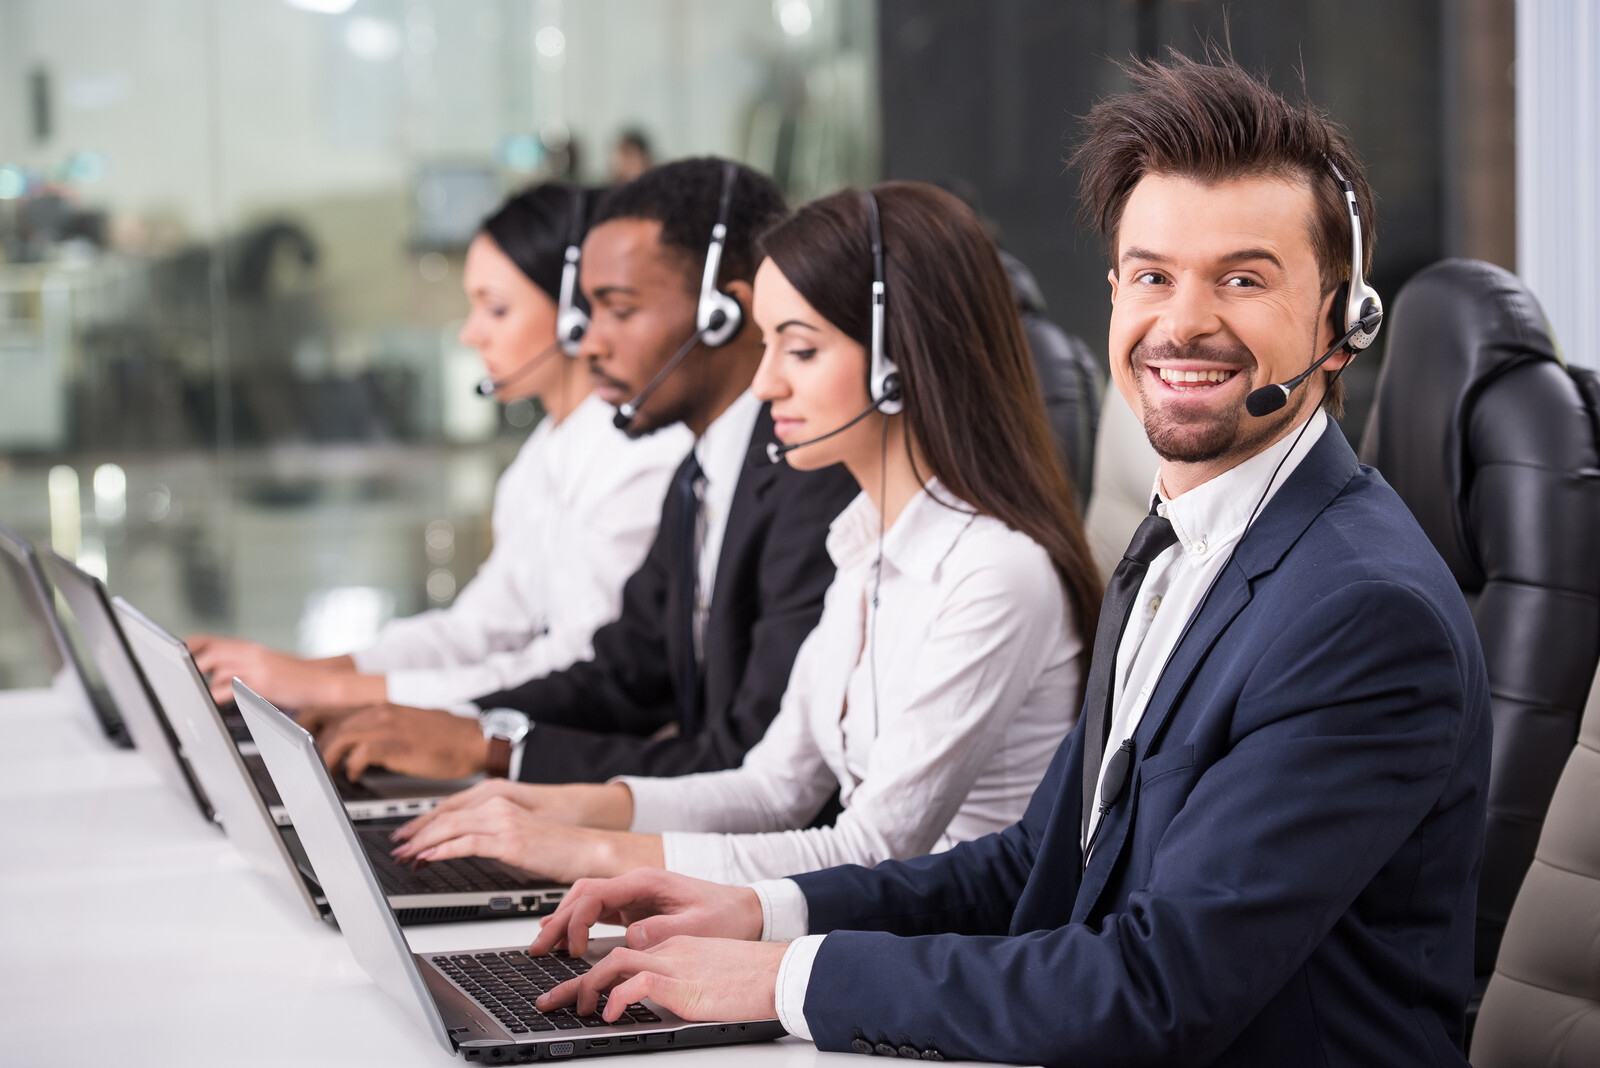 Side view of a line of telemarketing employees talking on headsets working on computers